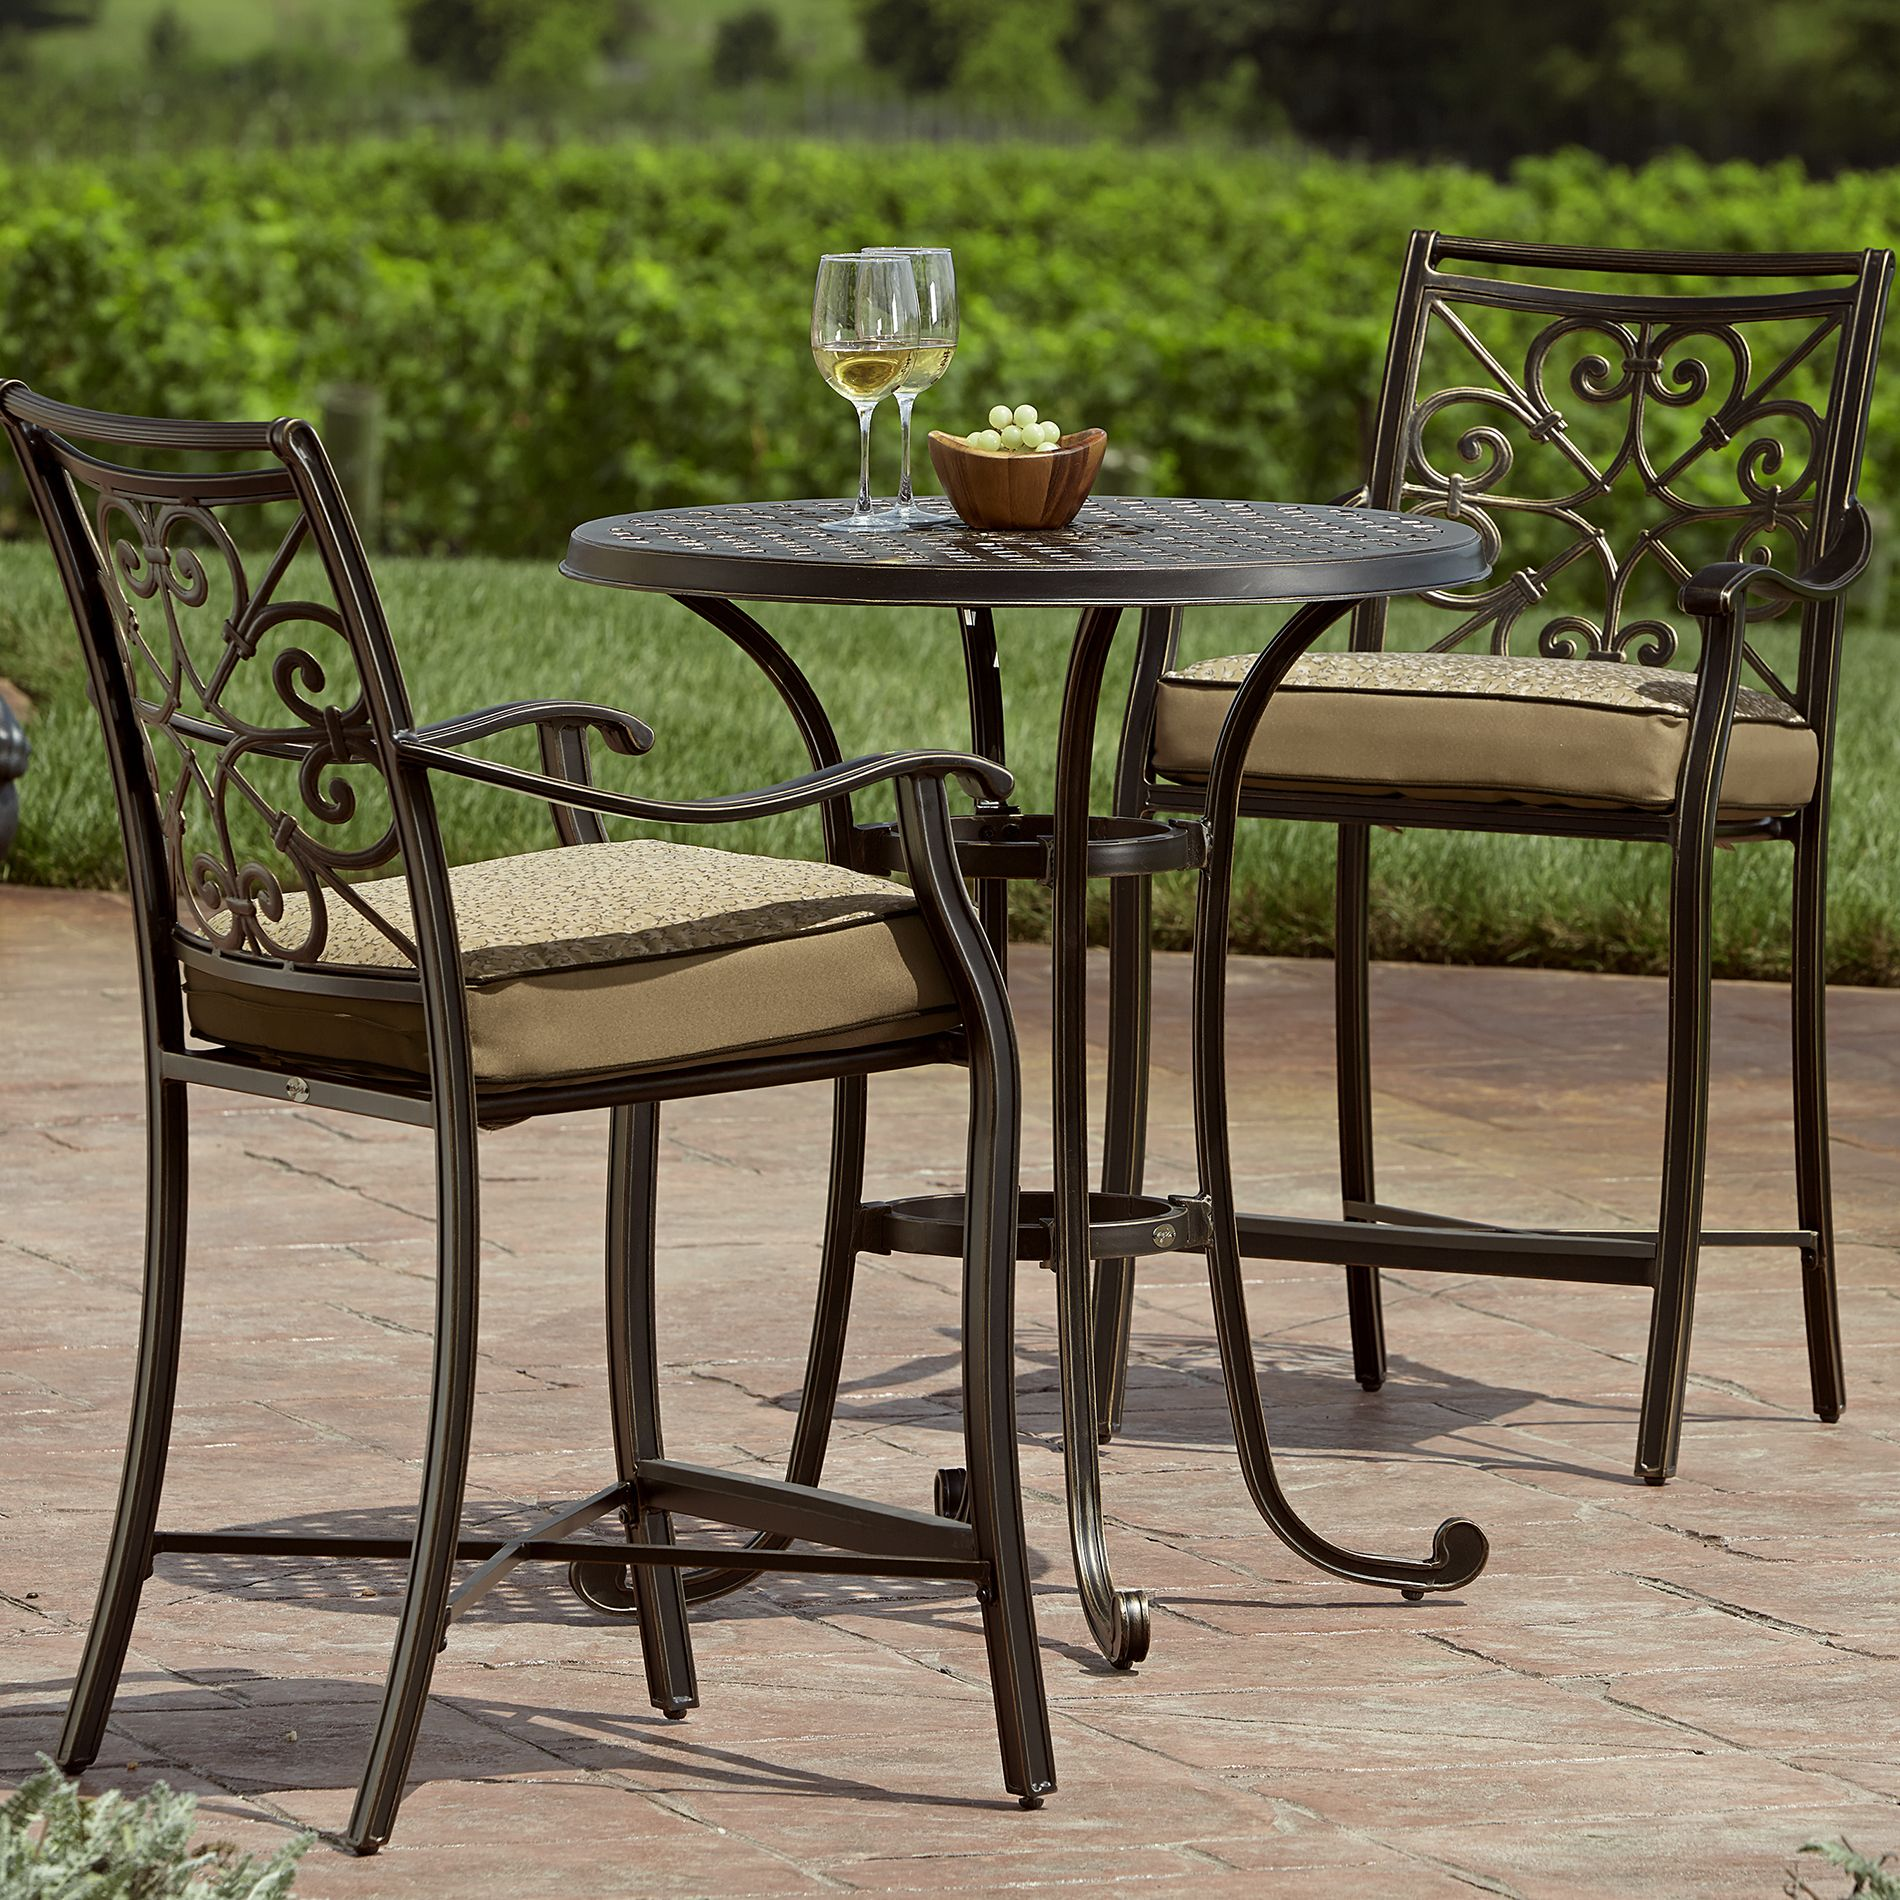 Parkside 3 Piece Bistro Set ***LIMITED AVAILABILITY*** - Sears ...